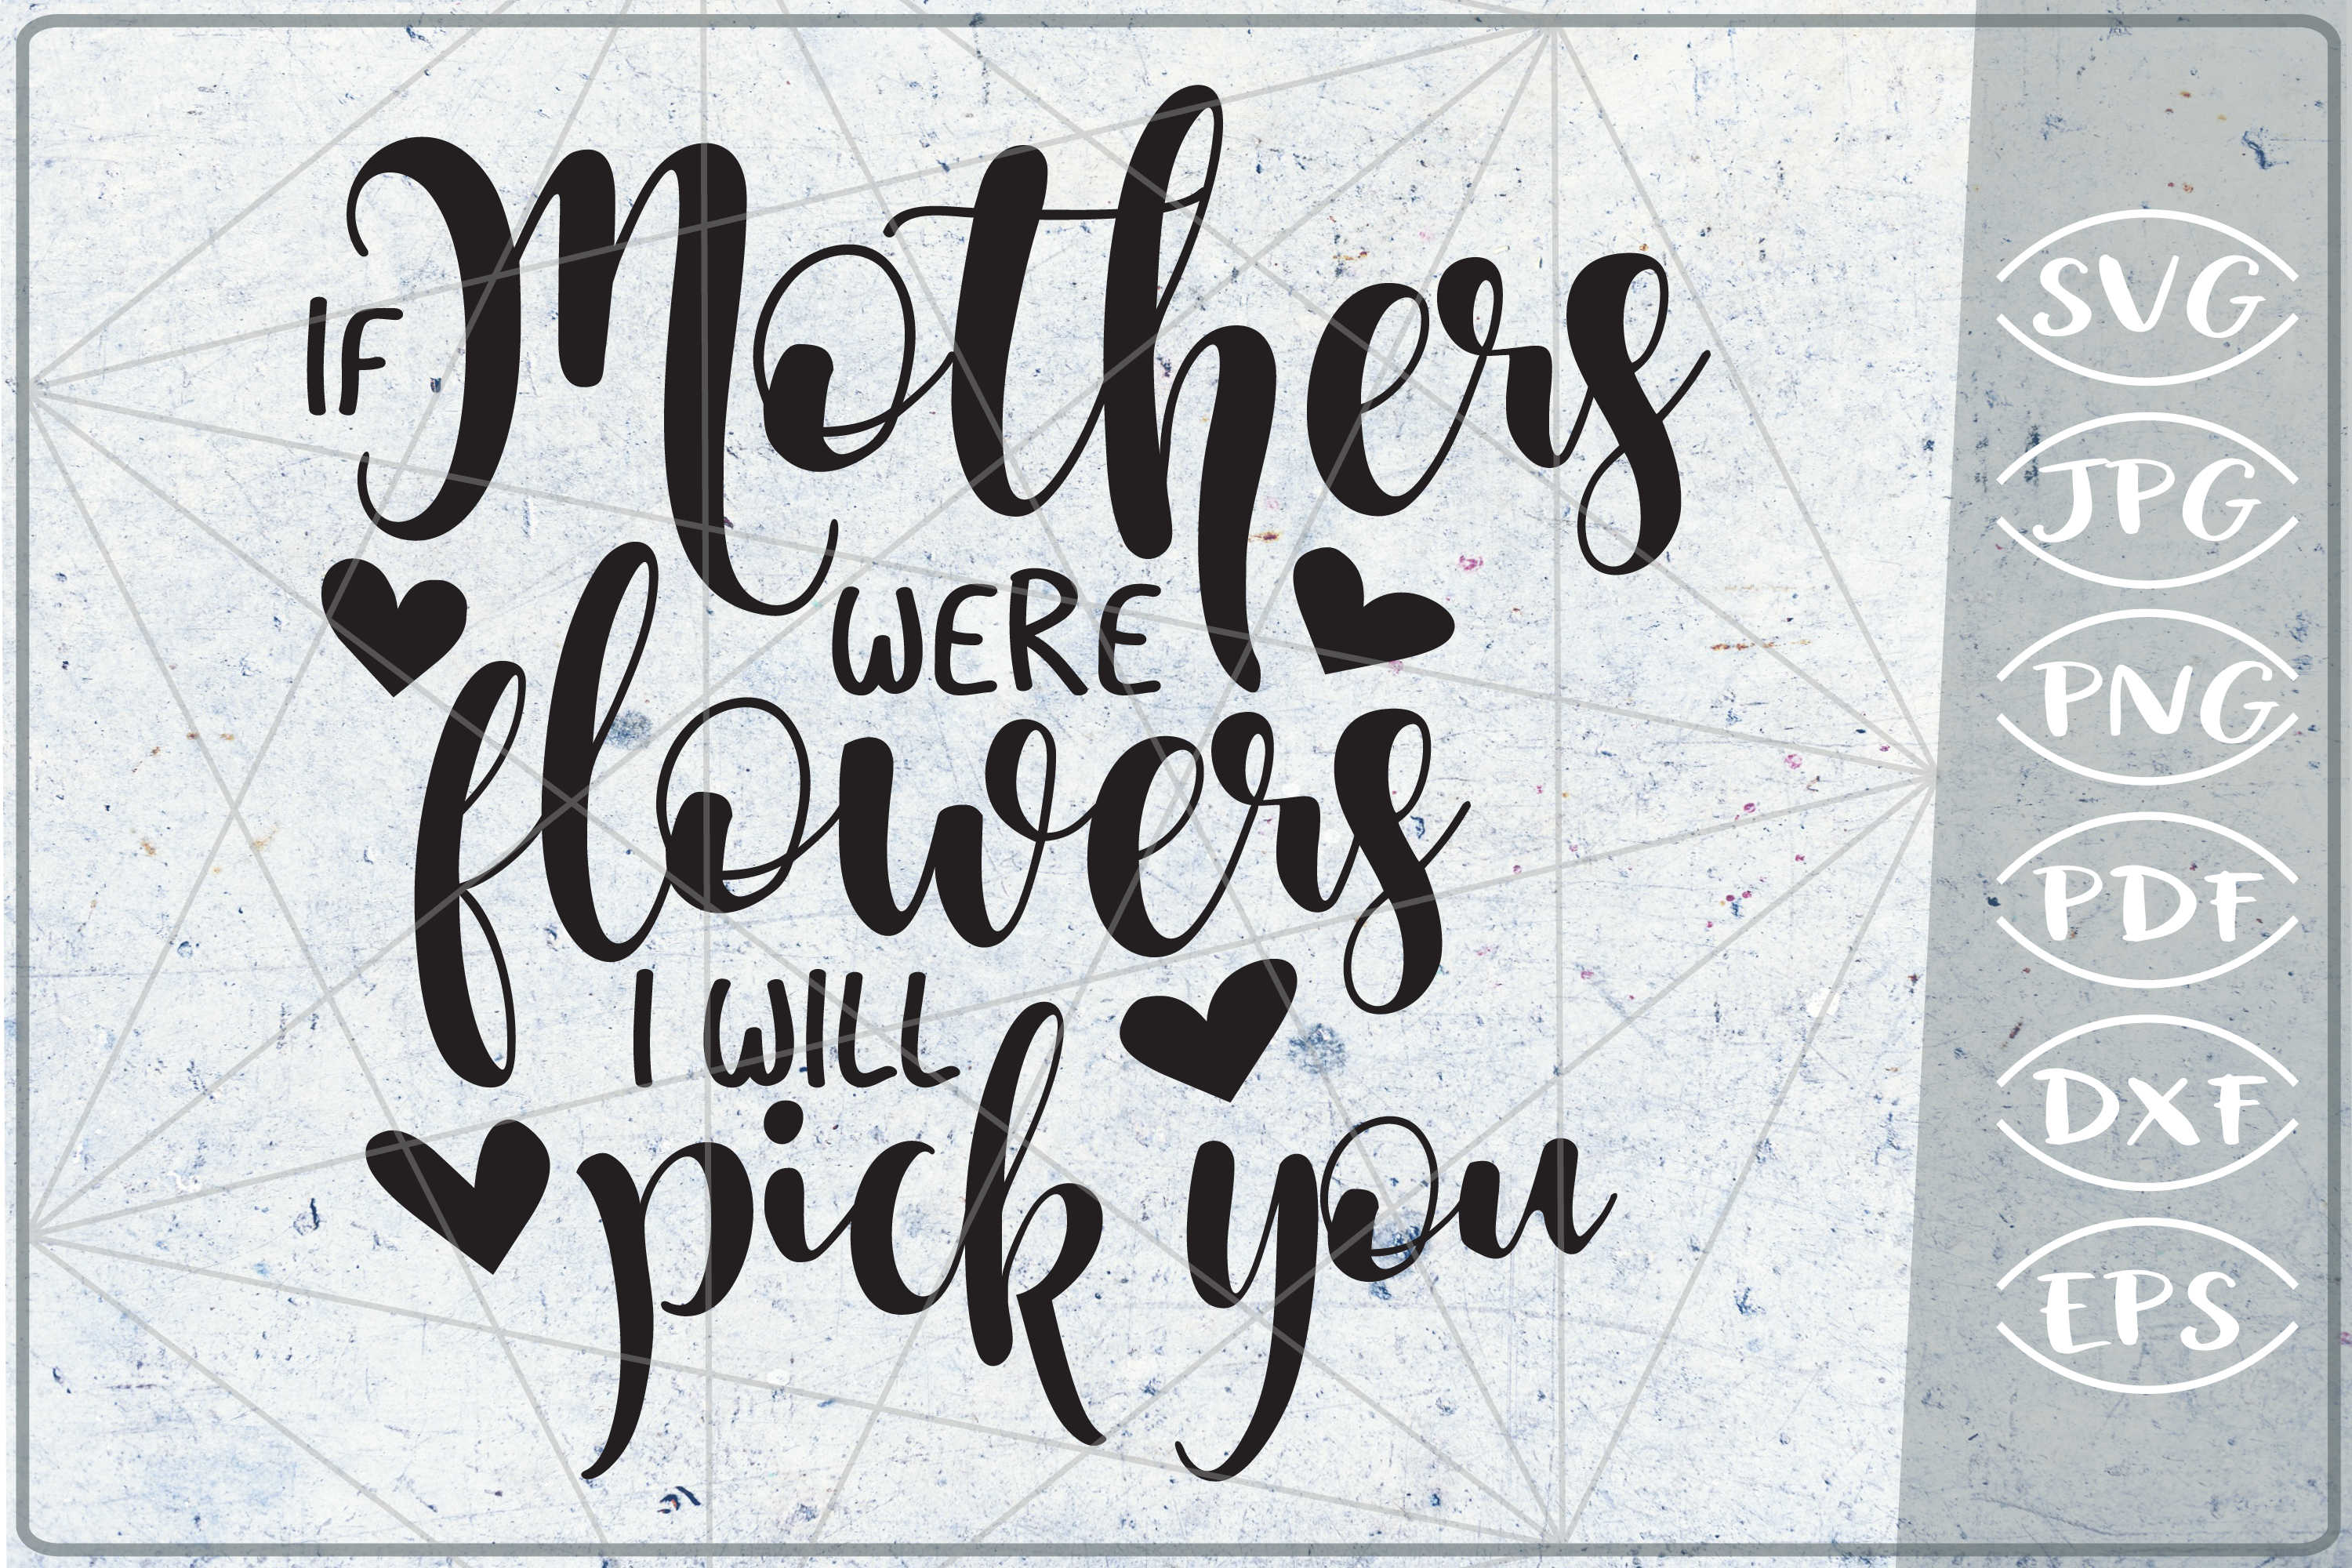 If Mothers Were Flowers I Will Pick You SVG Cutting File example image 1